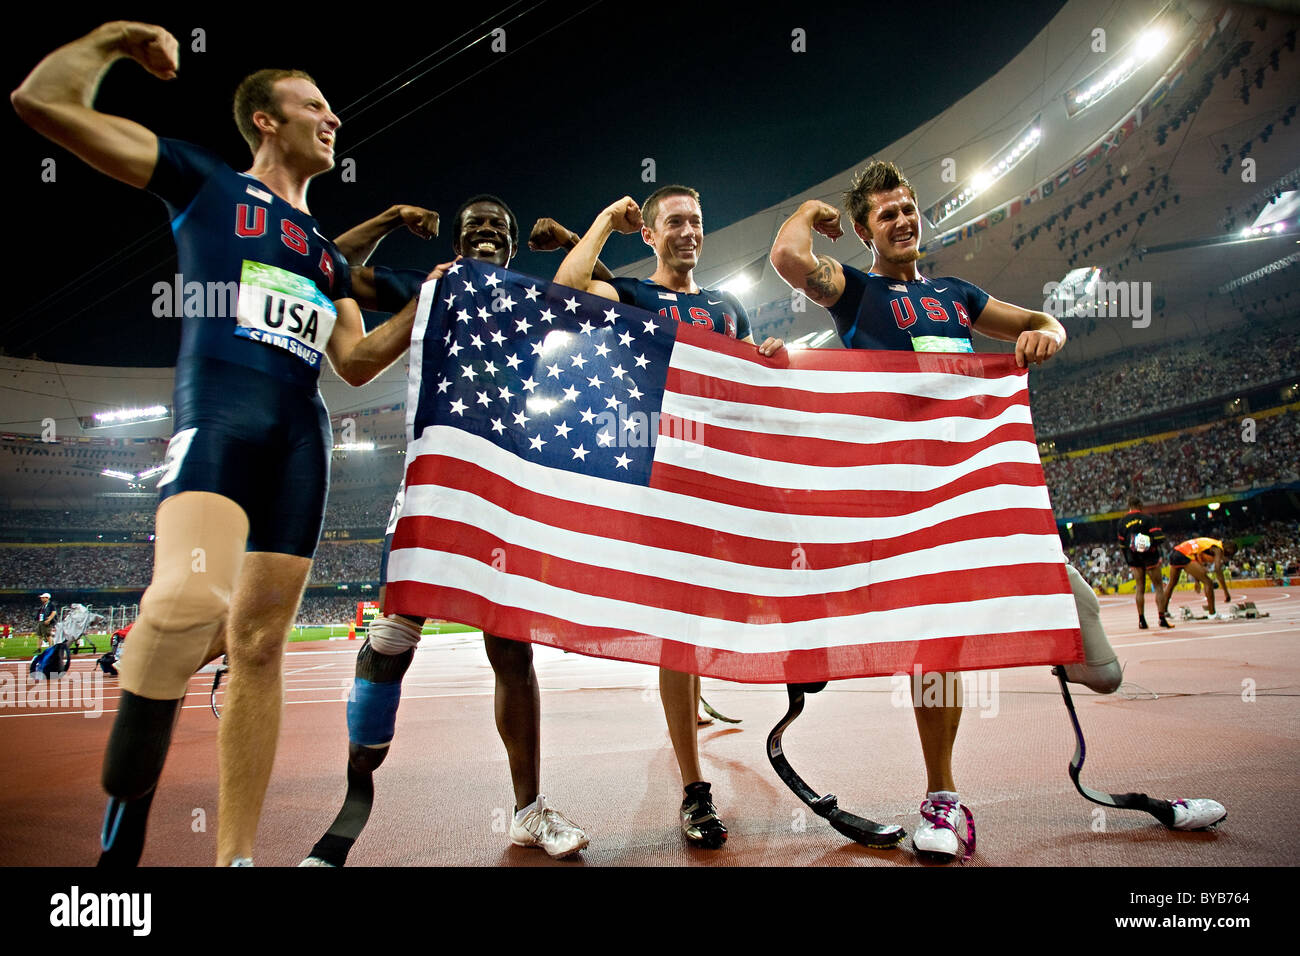 USA team members celebrate after their victory in the men's T44 4x100m final relay race at the Beijing 2008 - Stock Image